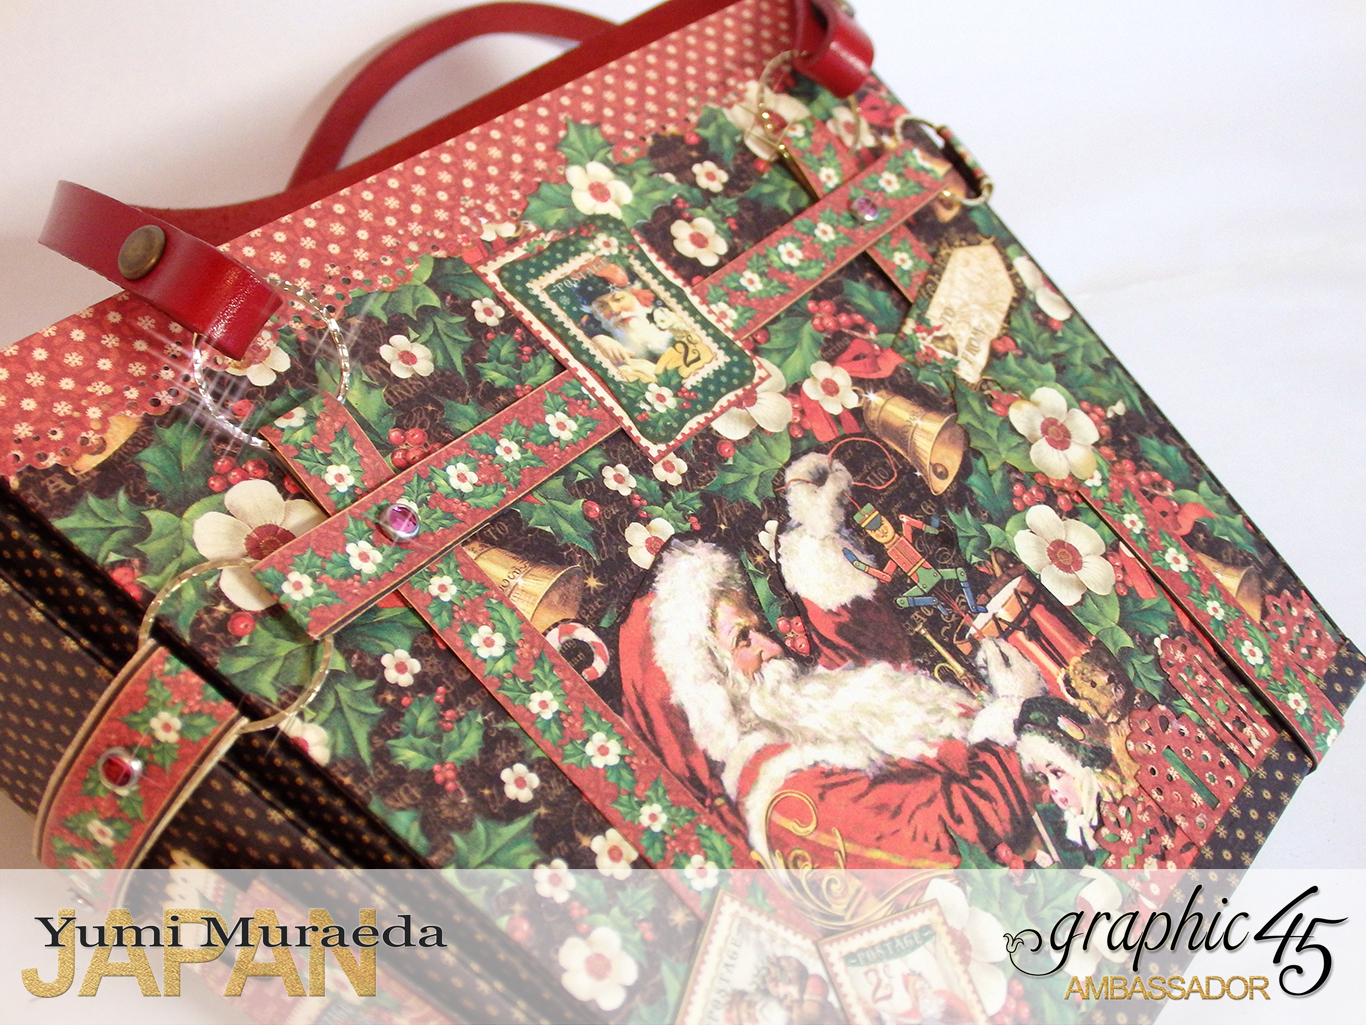 TownToteBagGraphic45StNich0lasbyYumiMuraeadaProductbyGraphic45Photo8a.jpg